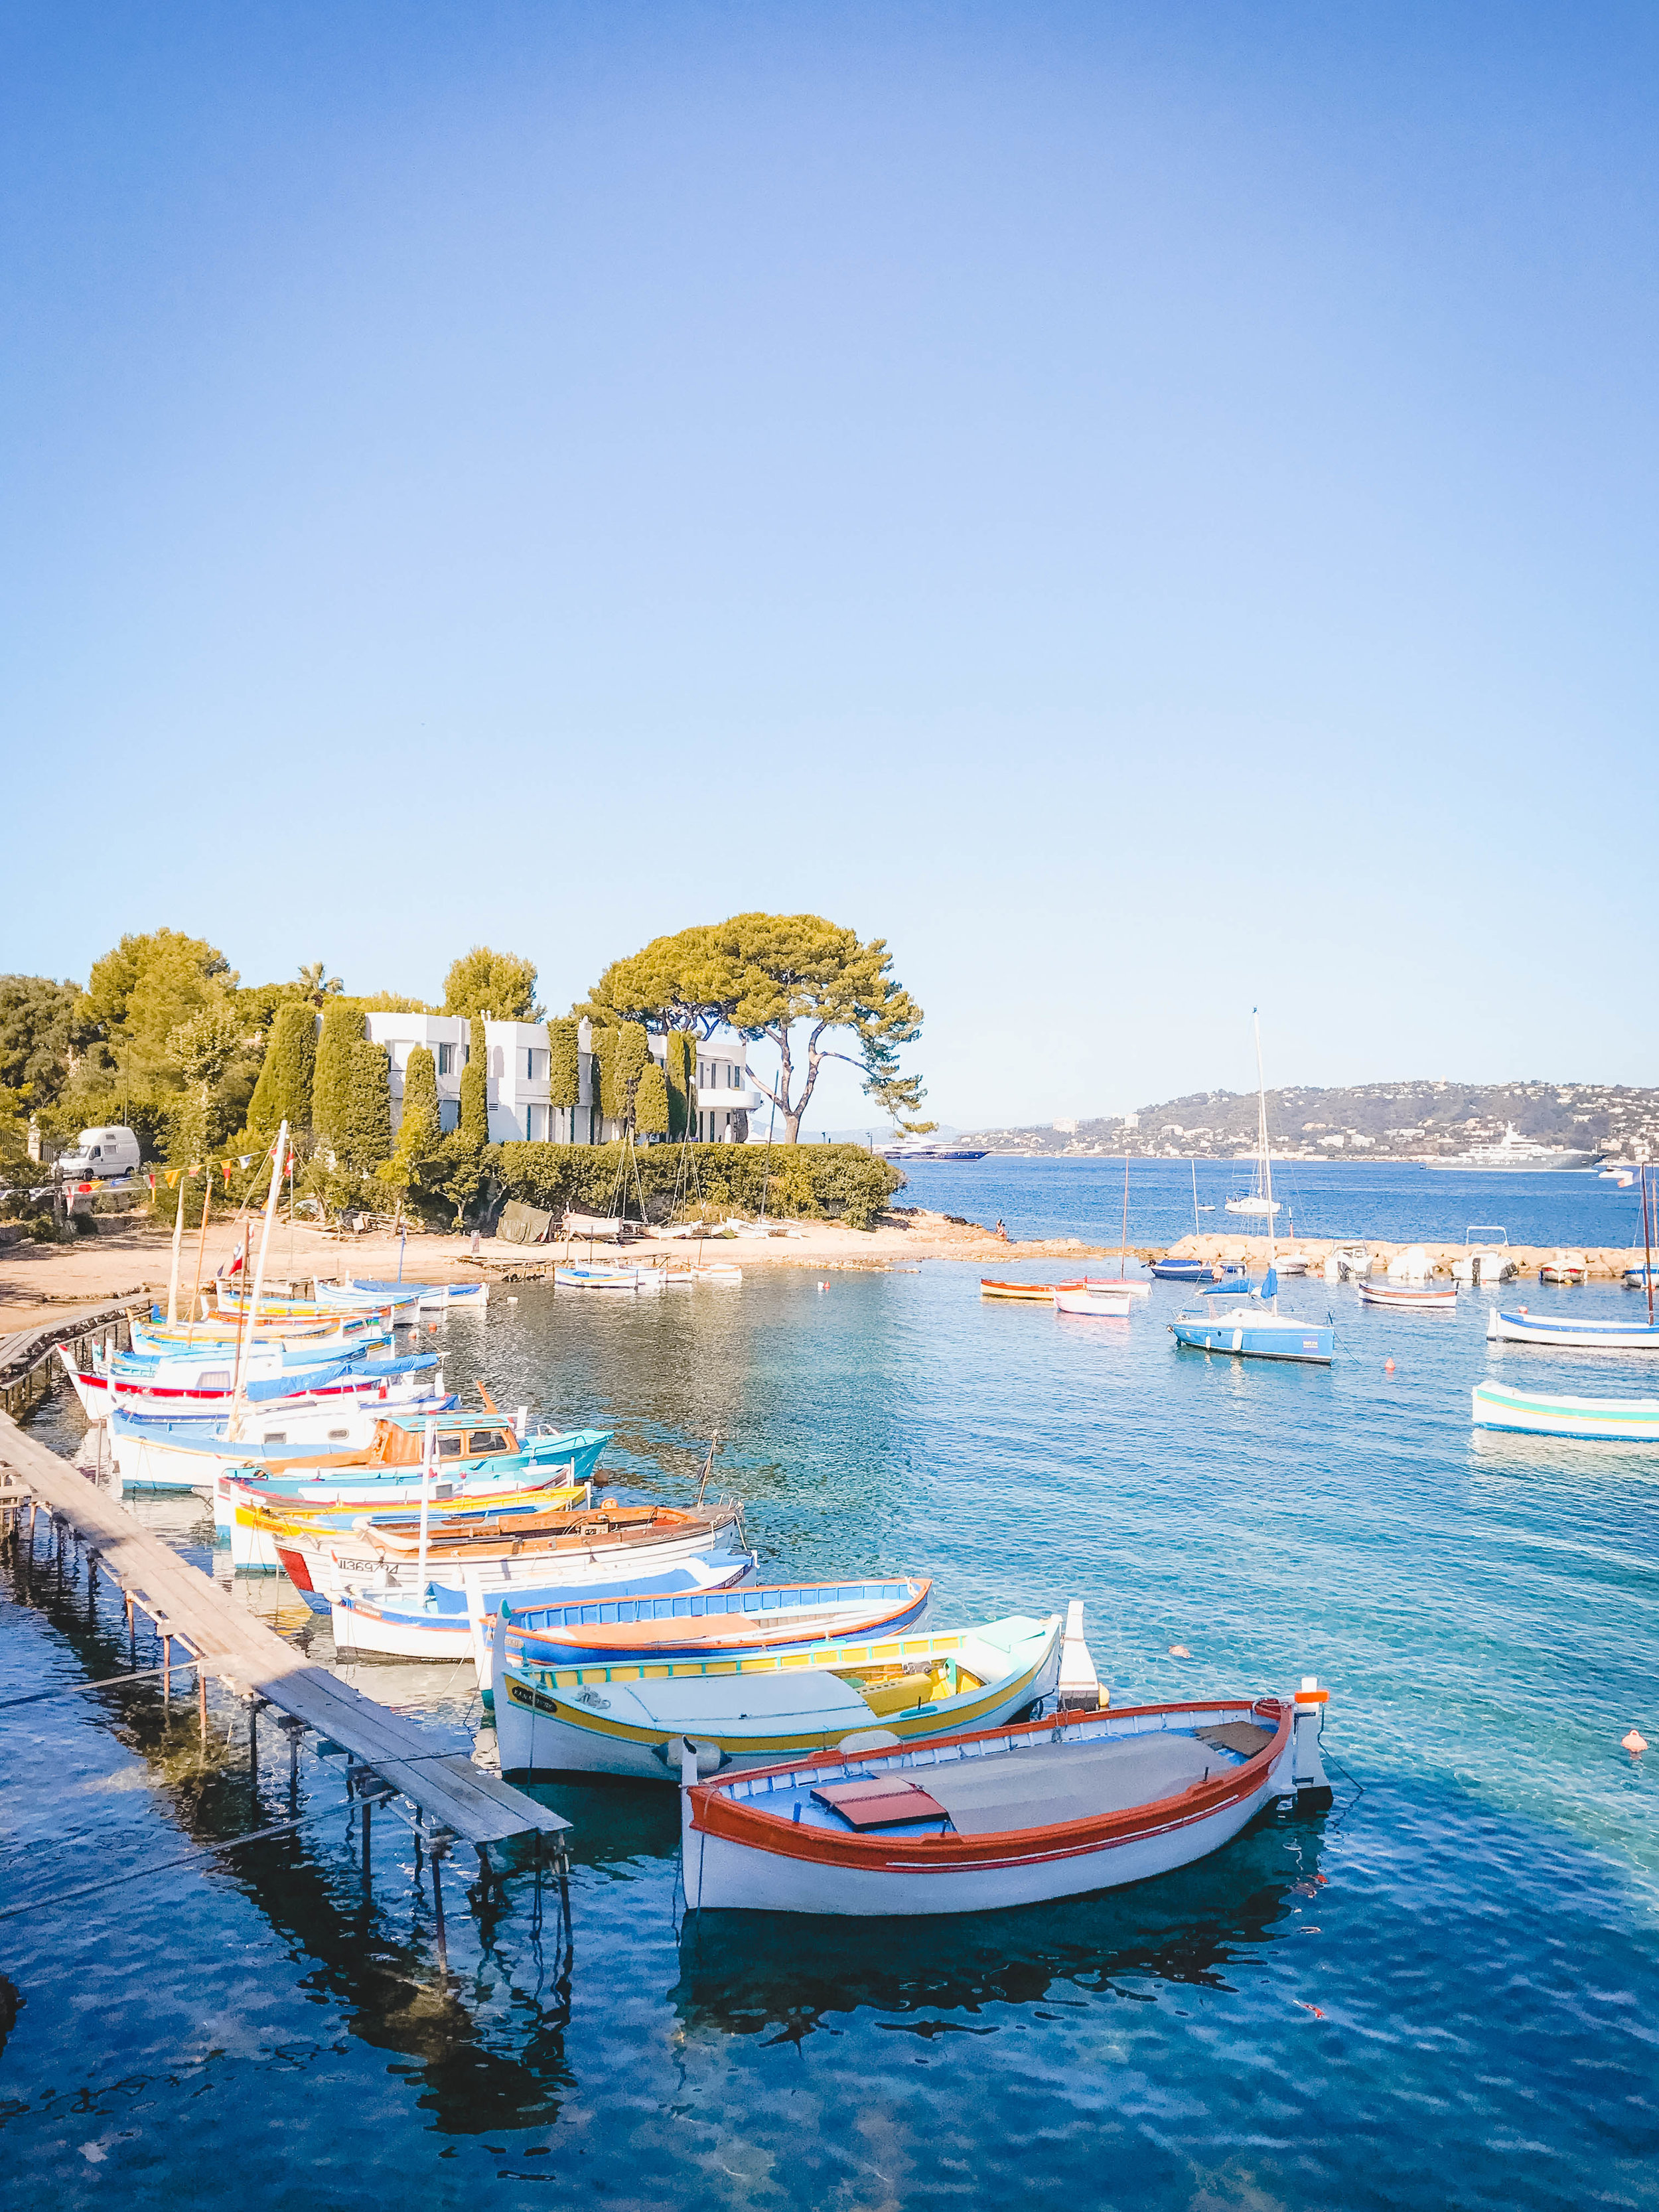 Old Fishing Village in Cap D'Antibes